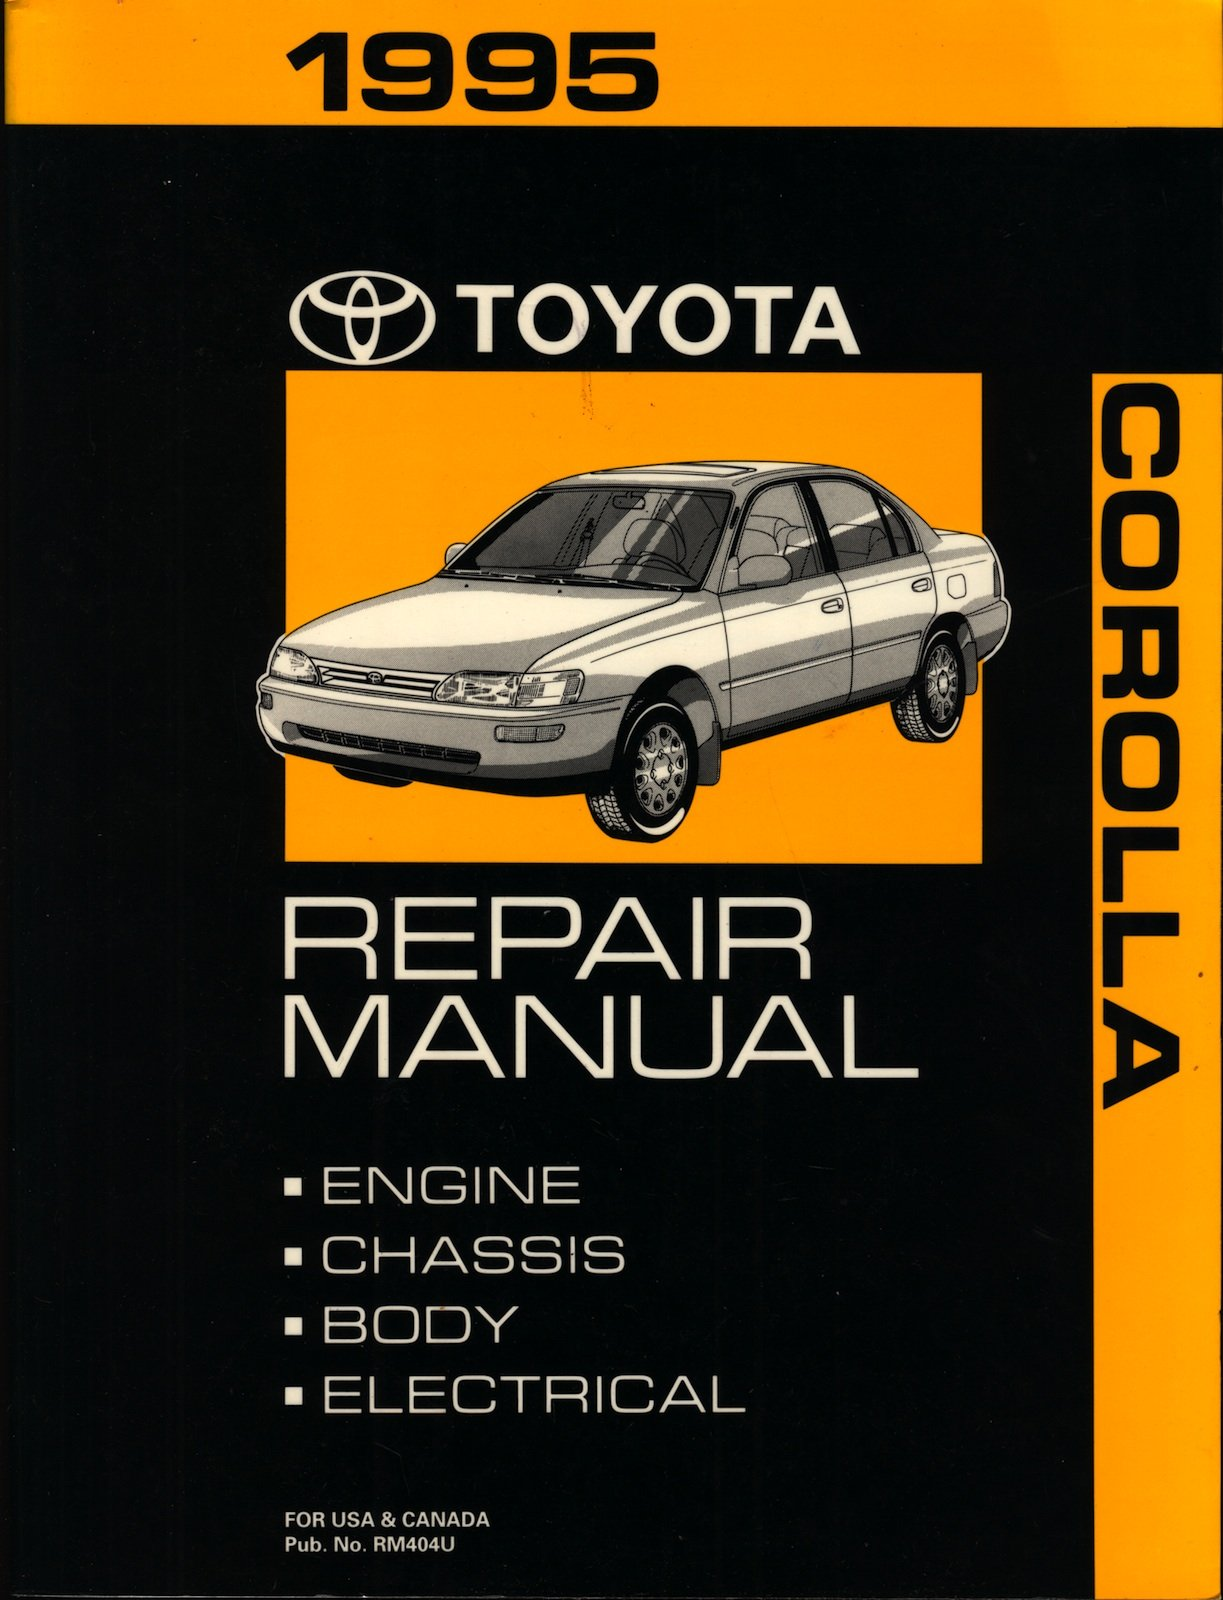 71GLTQVziNL 1995 toyota corolla repair manual toyota amazon com books Toyota Stereo Wiring Diagram at bakdesigns.co